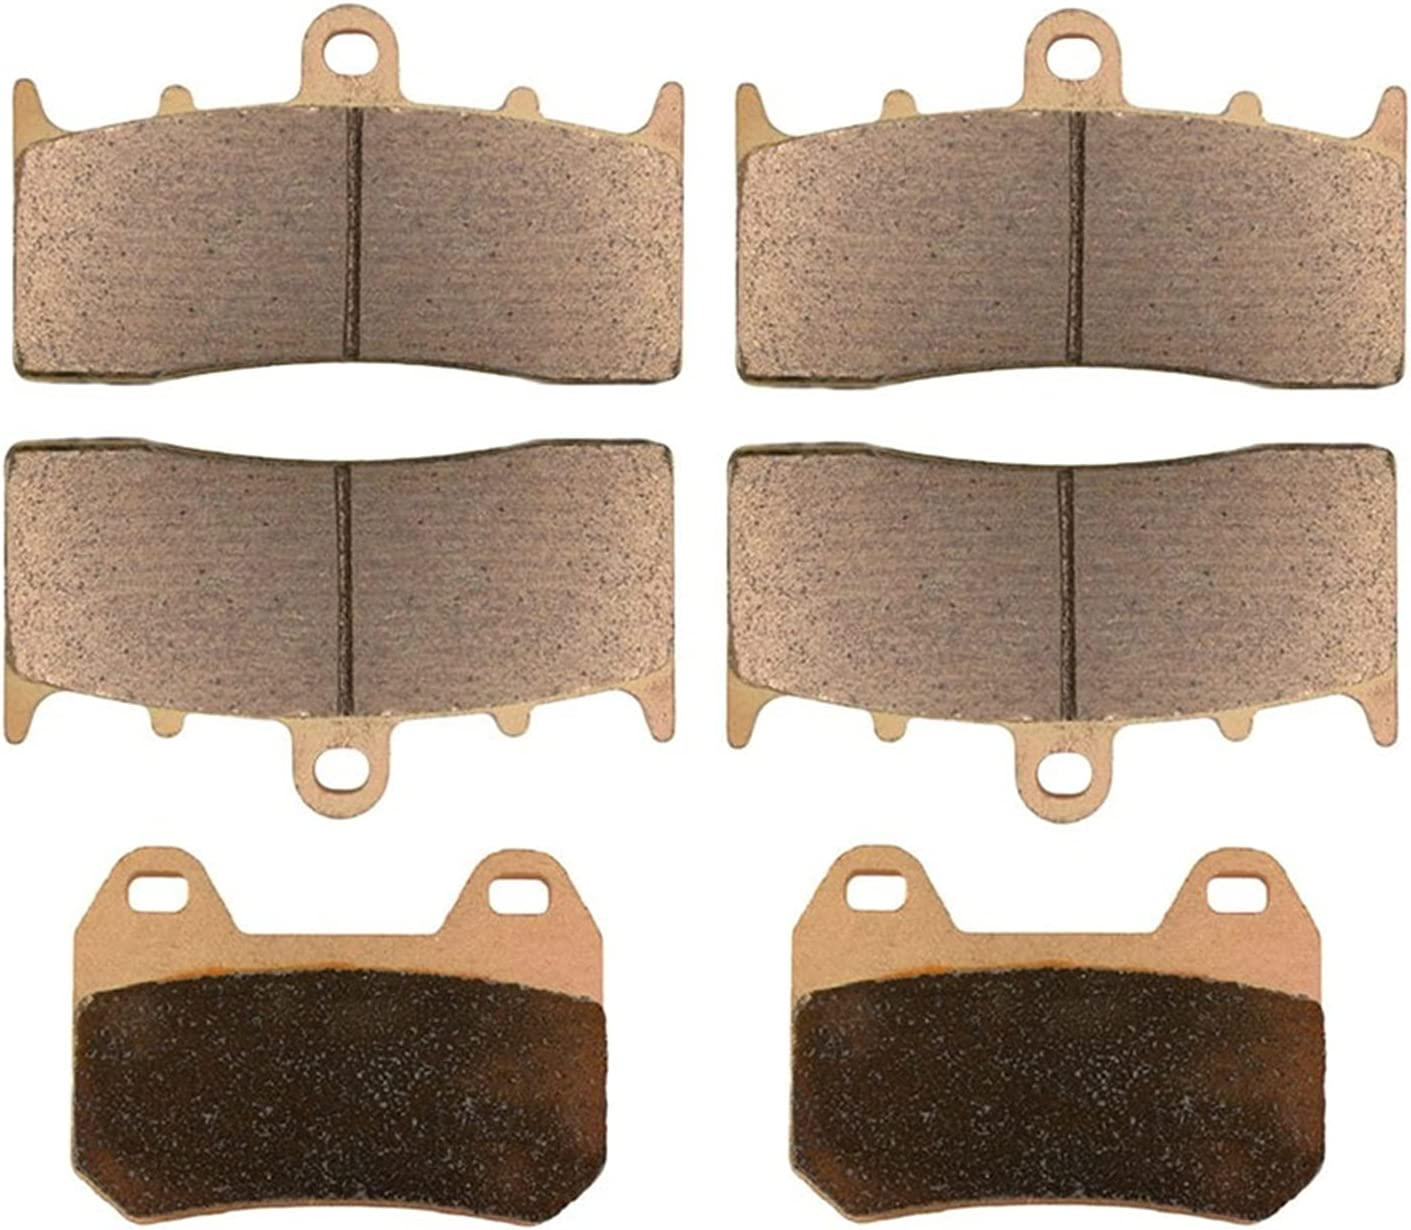 Motorbike Brake Pads Front Rear Be super welcome Bombing new work and Motorcycle